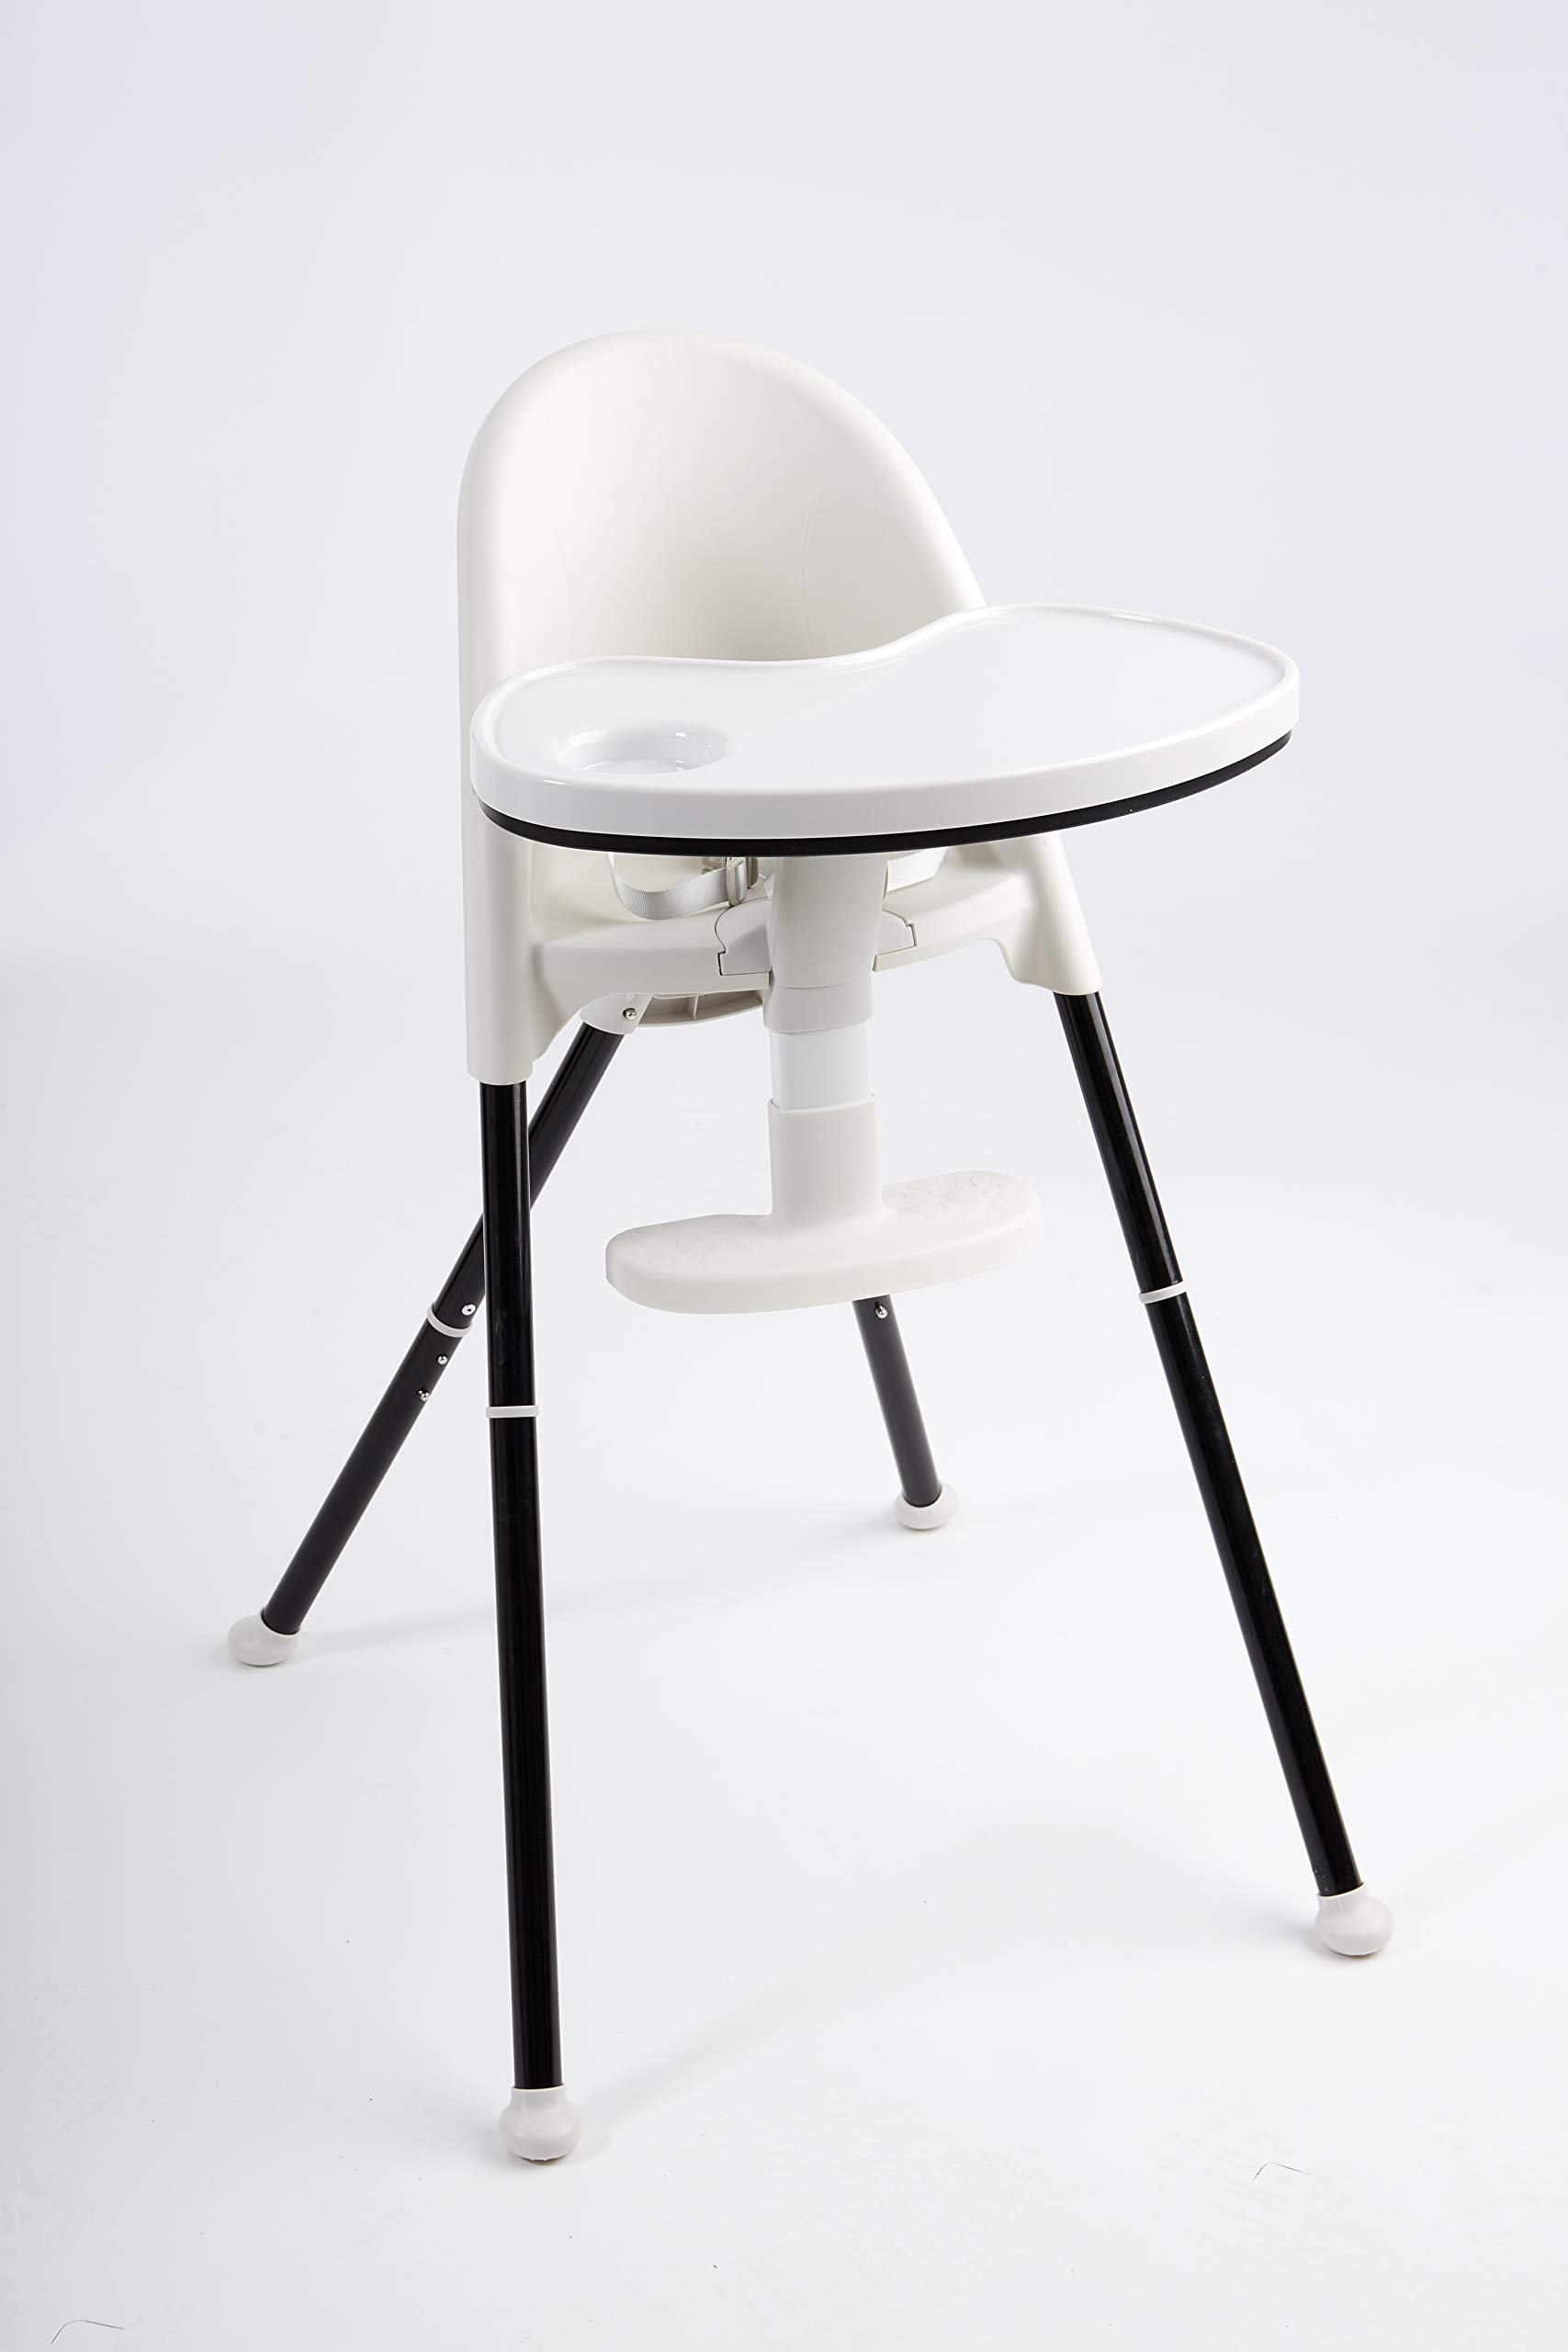 Primo Cozy Tot Deluxe Convertible Folding High Chair & Toddler Chair - Black, Black/White